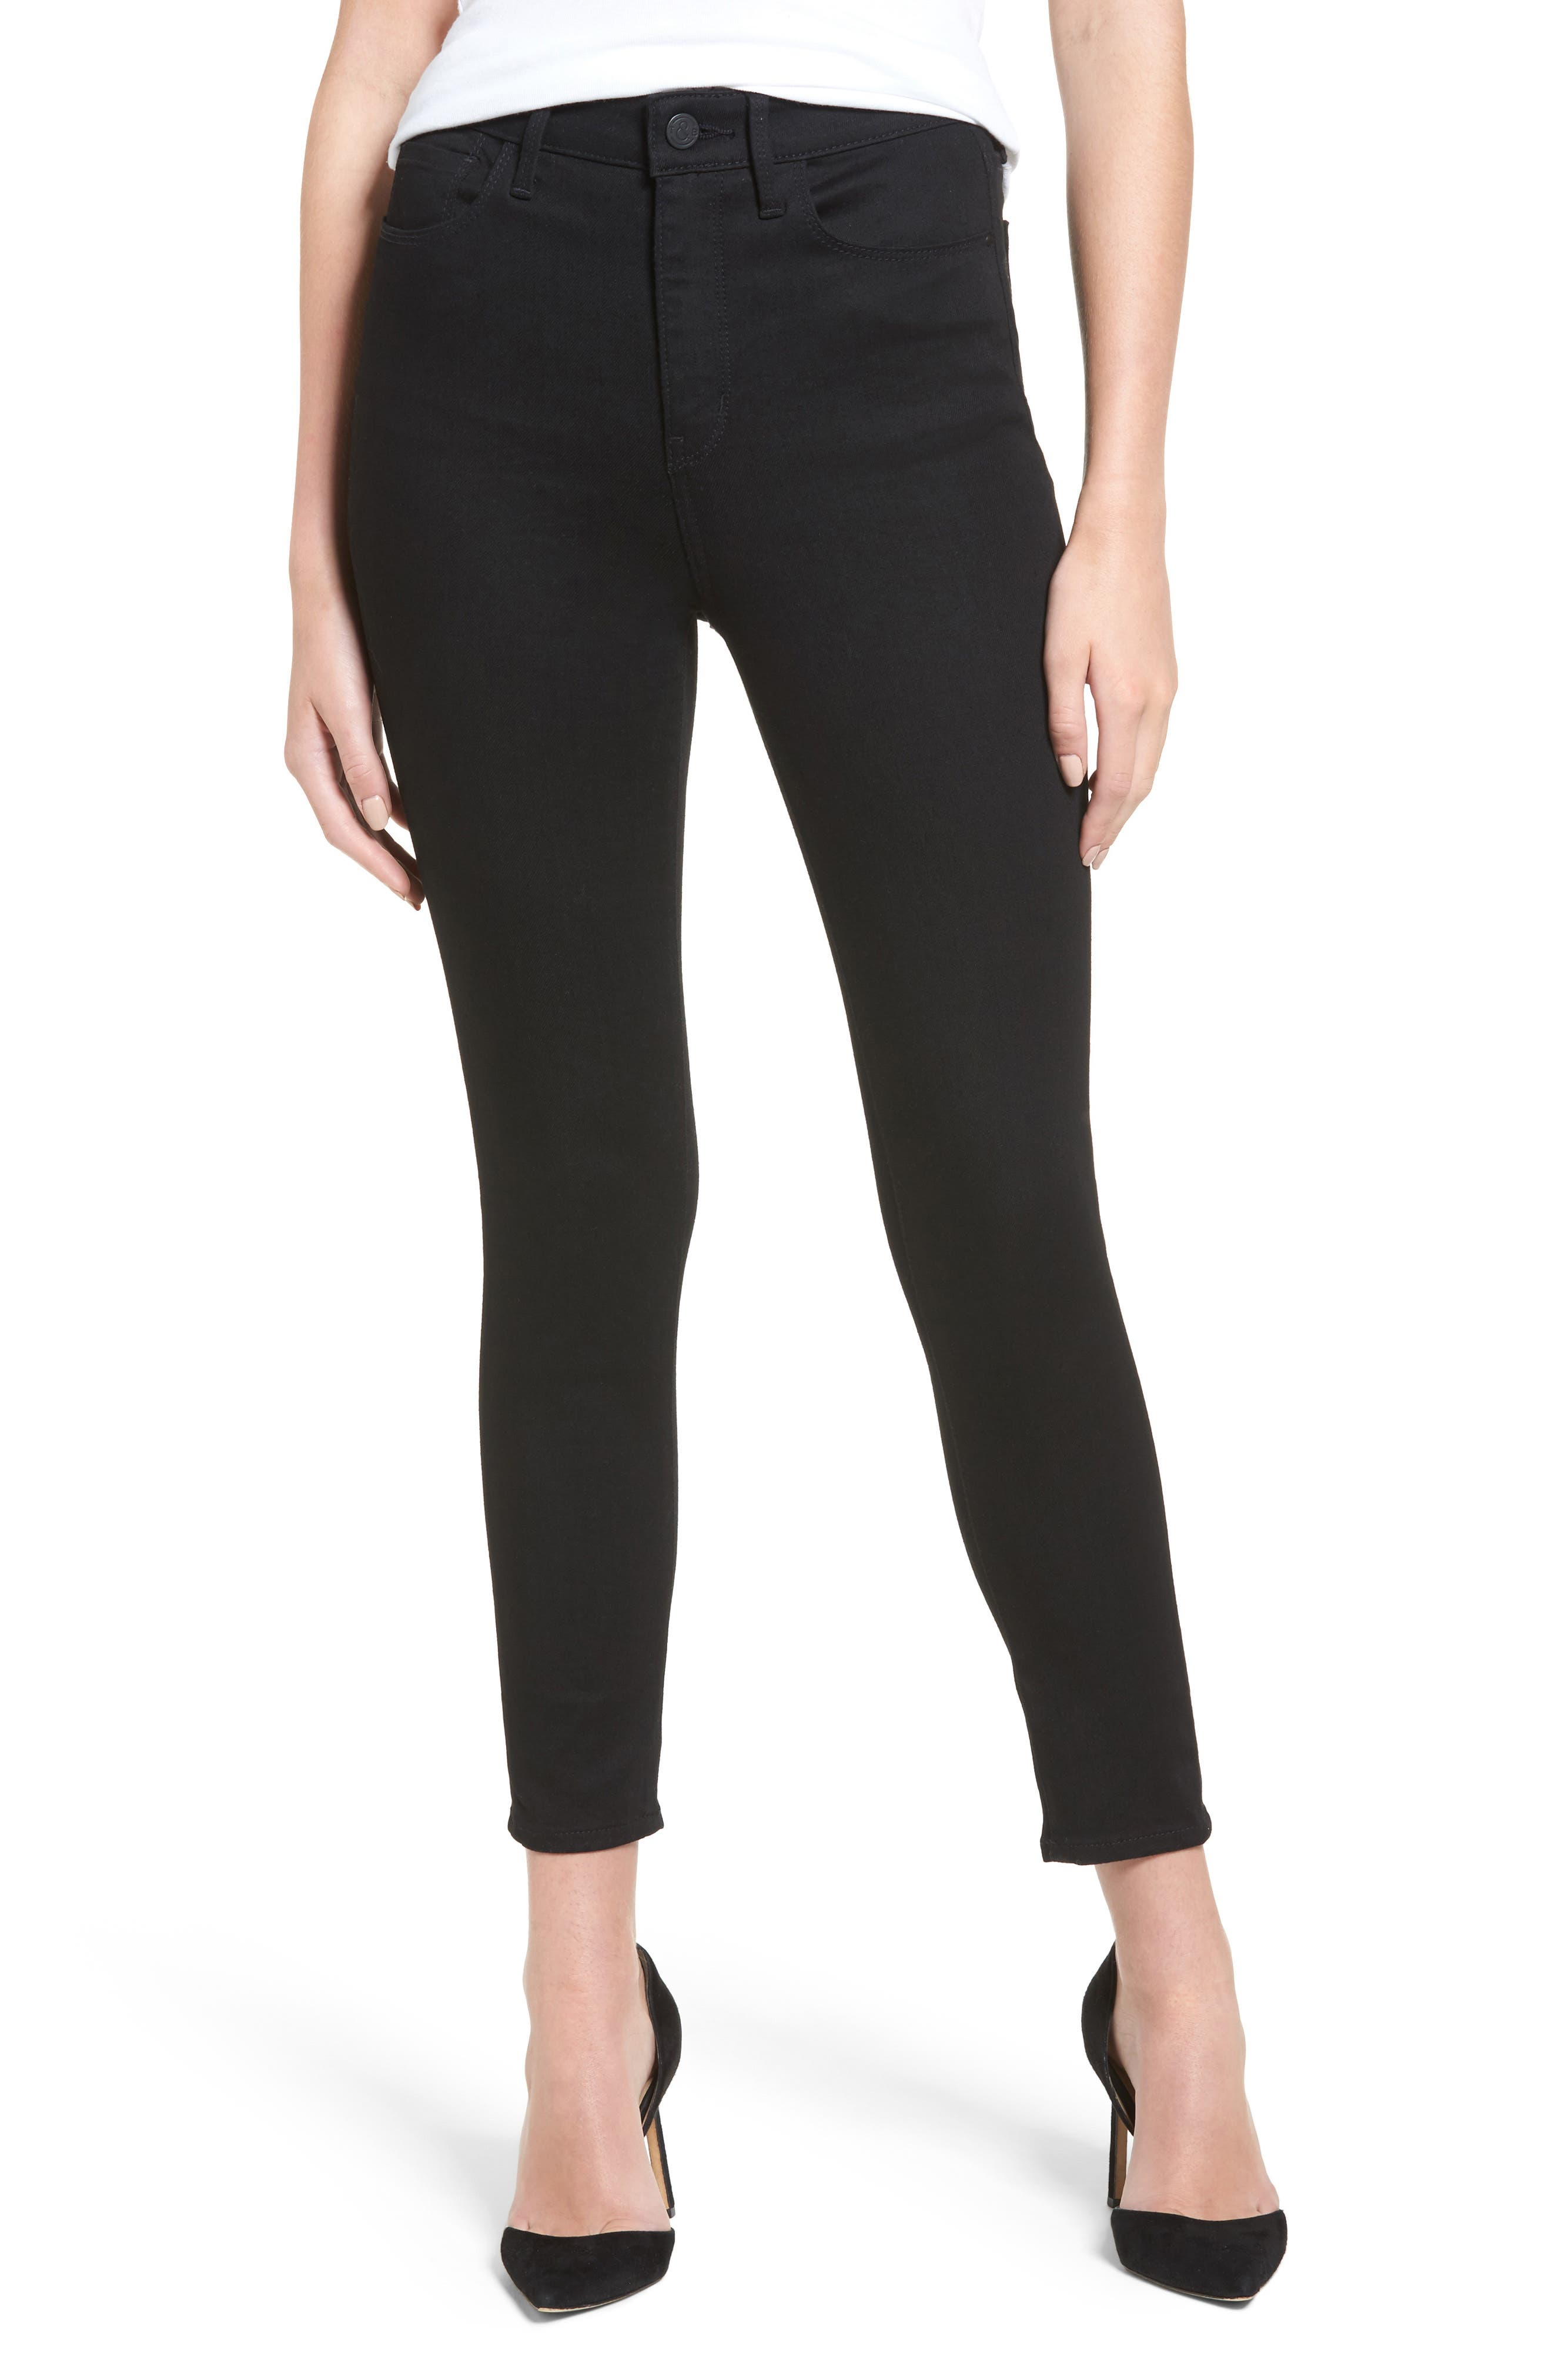 Charity High Waist Crop Skinny Jeans,                             Main thumbnail 1, color,                             Midnight Rinse